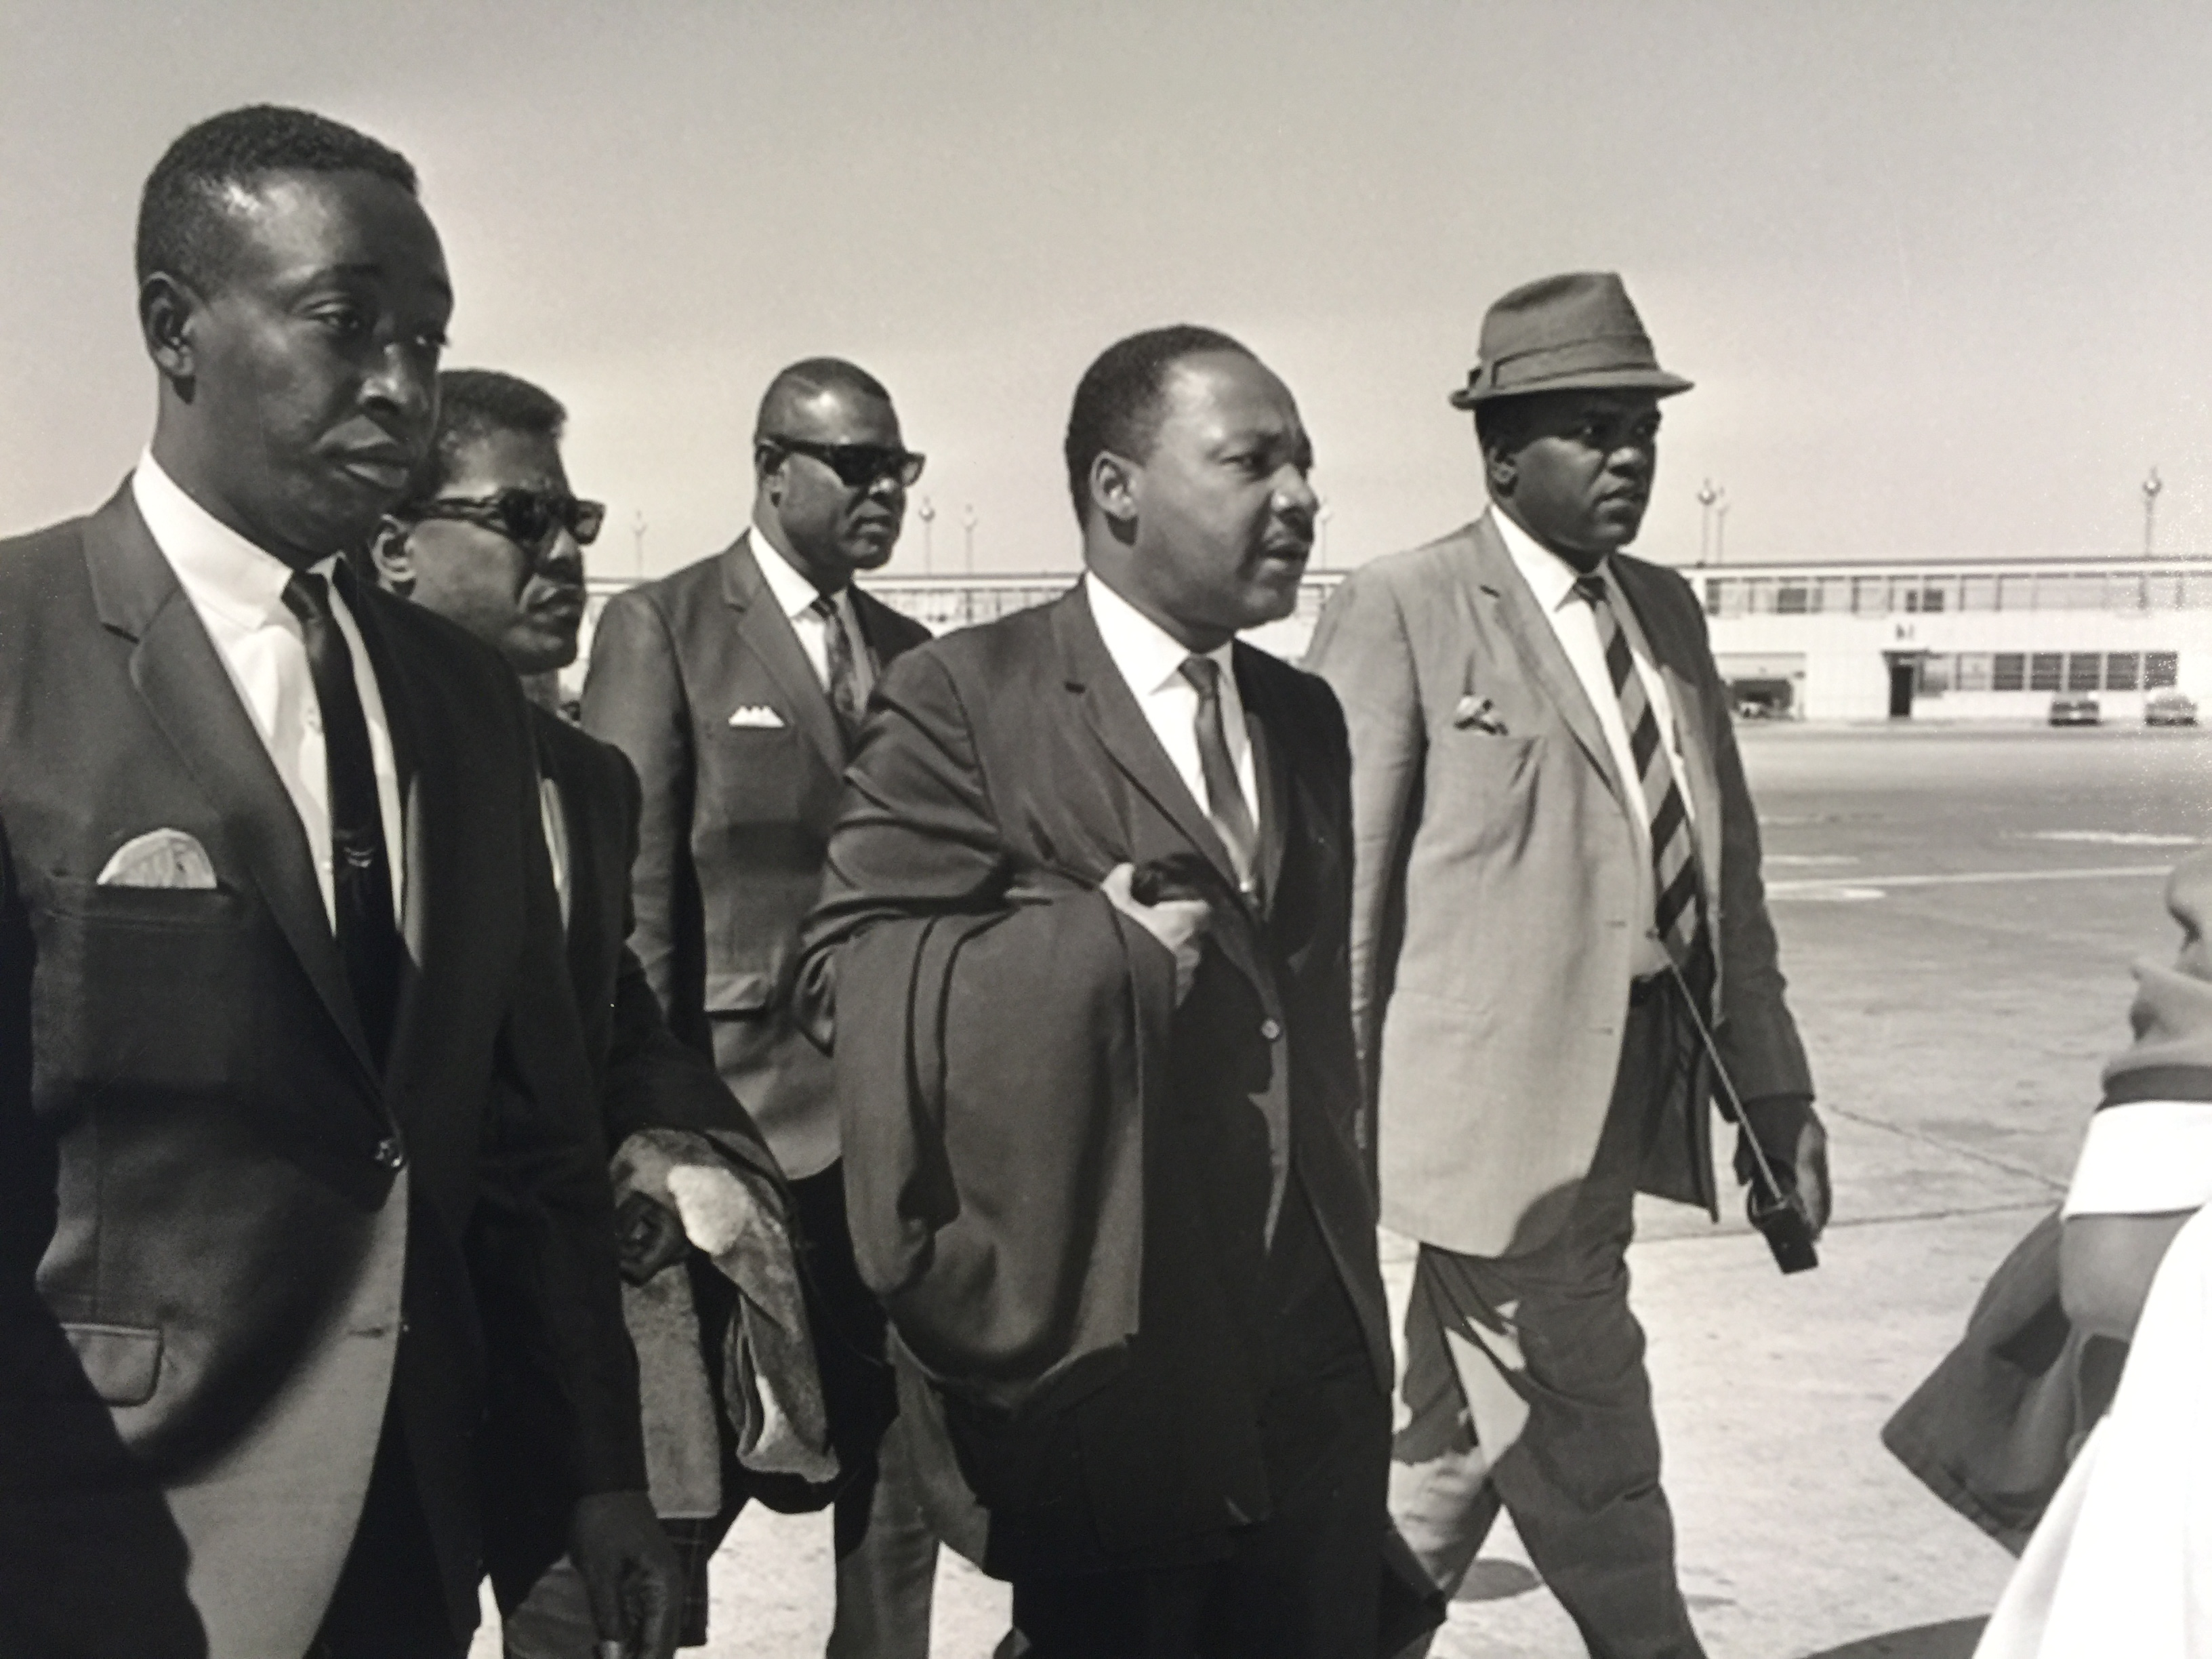 <div class='meta'><div class='origin-logo' data-origin='KTRK'></div><span class='caption-text' data-credit=''>Dr. Martin Luther King Jr. makes appearance in Houston in 1967.</span></div>